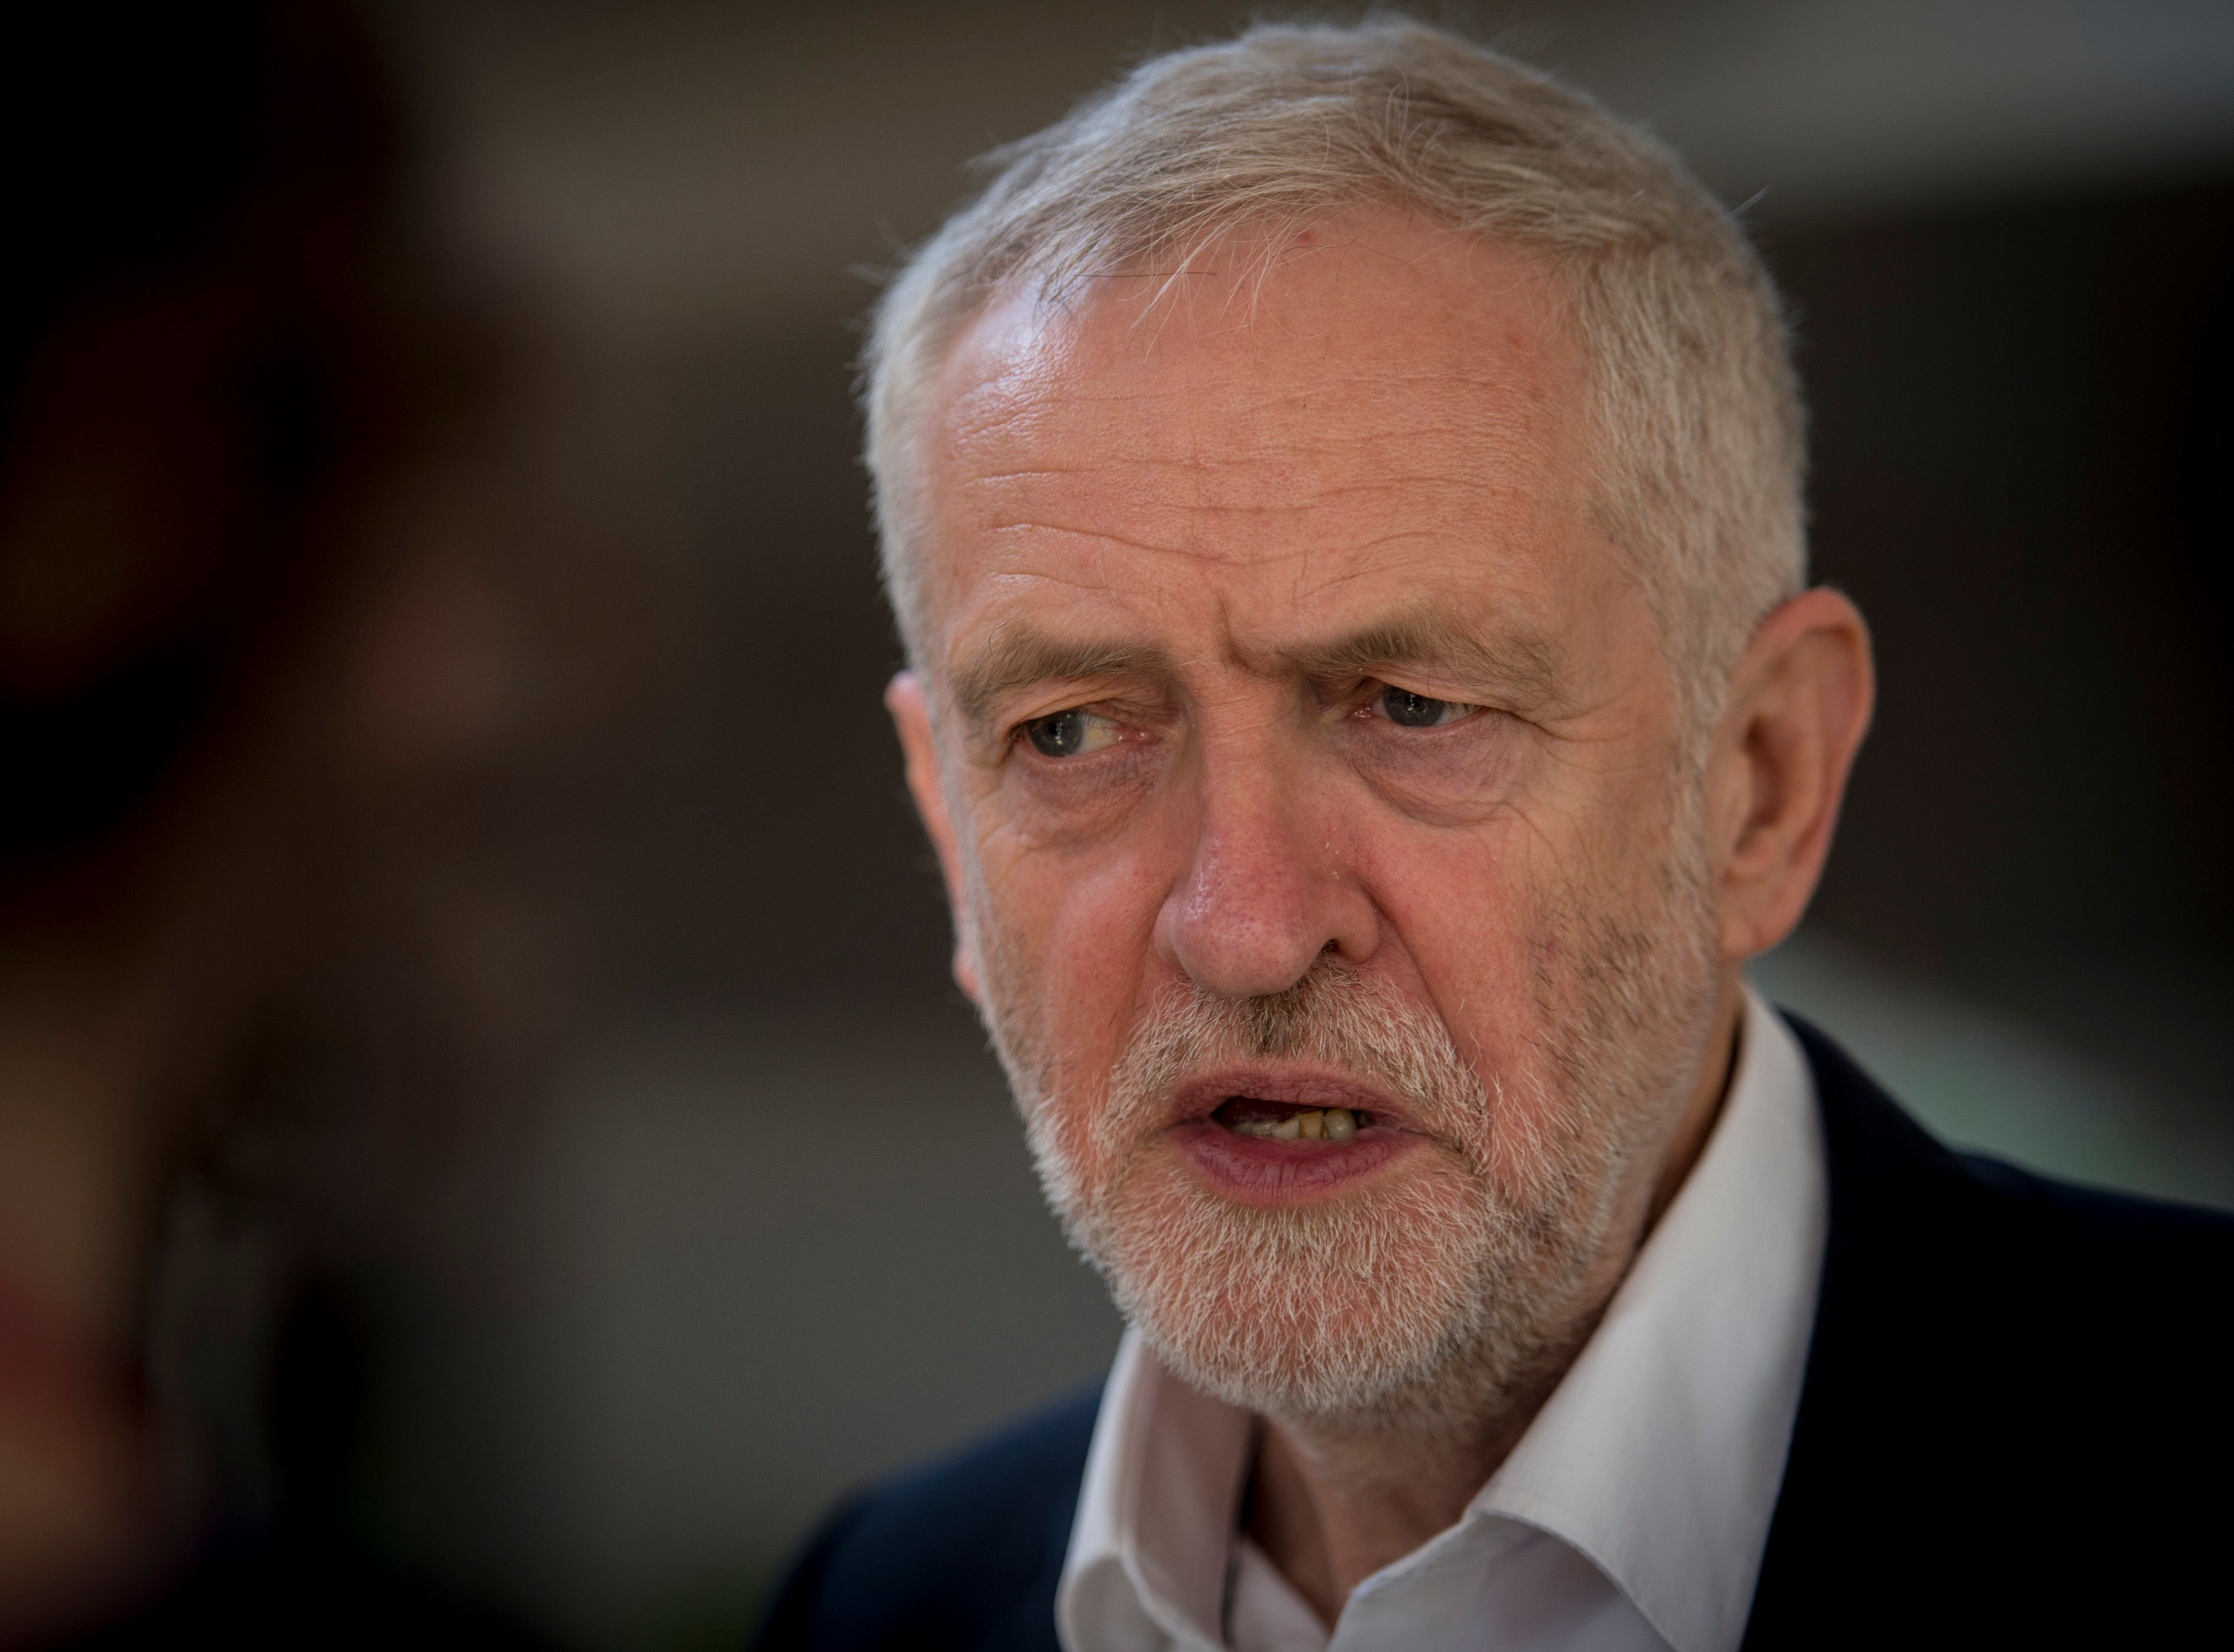 Jeremy Corbyn will say on Tuesday that a Labour government will raise the Carer's